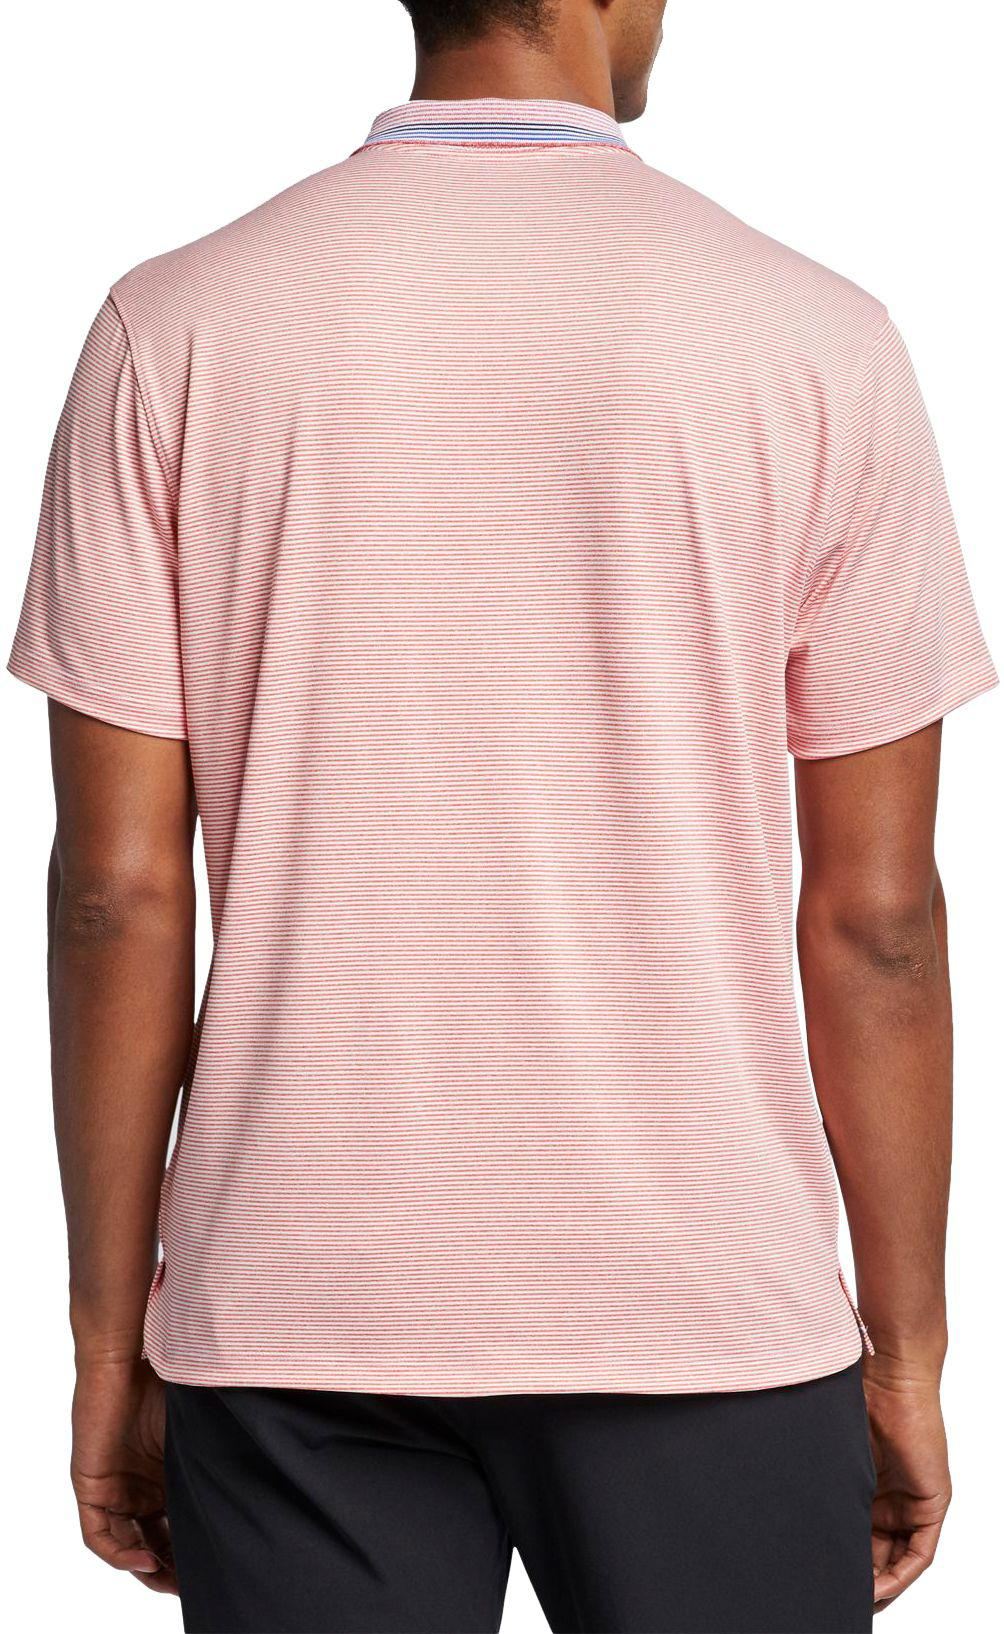 49ce58efe3 Nike - Pink Vapor Control Stripe Golf Polo for Men - Lyst. View fullscreen